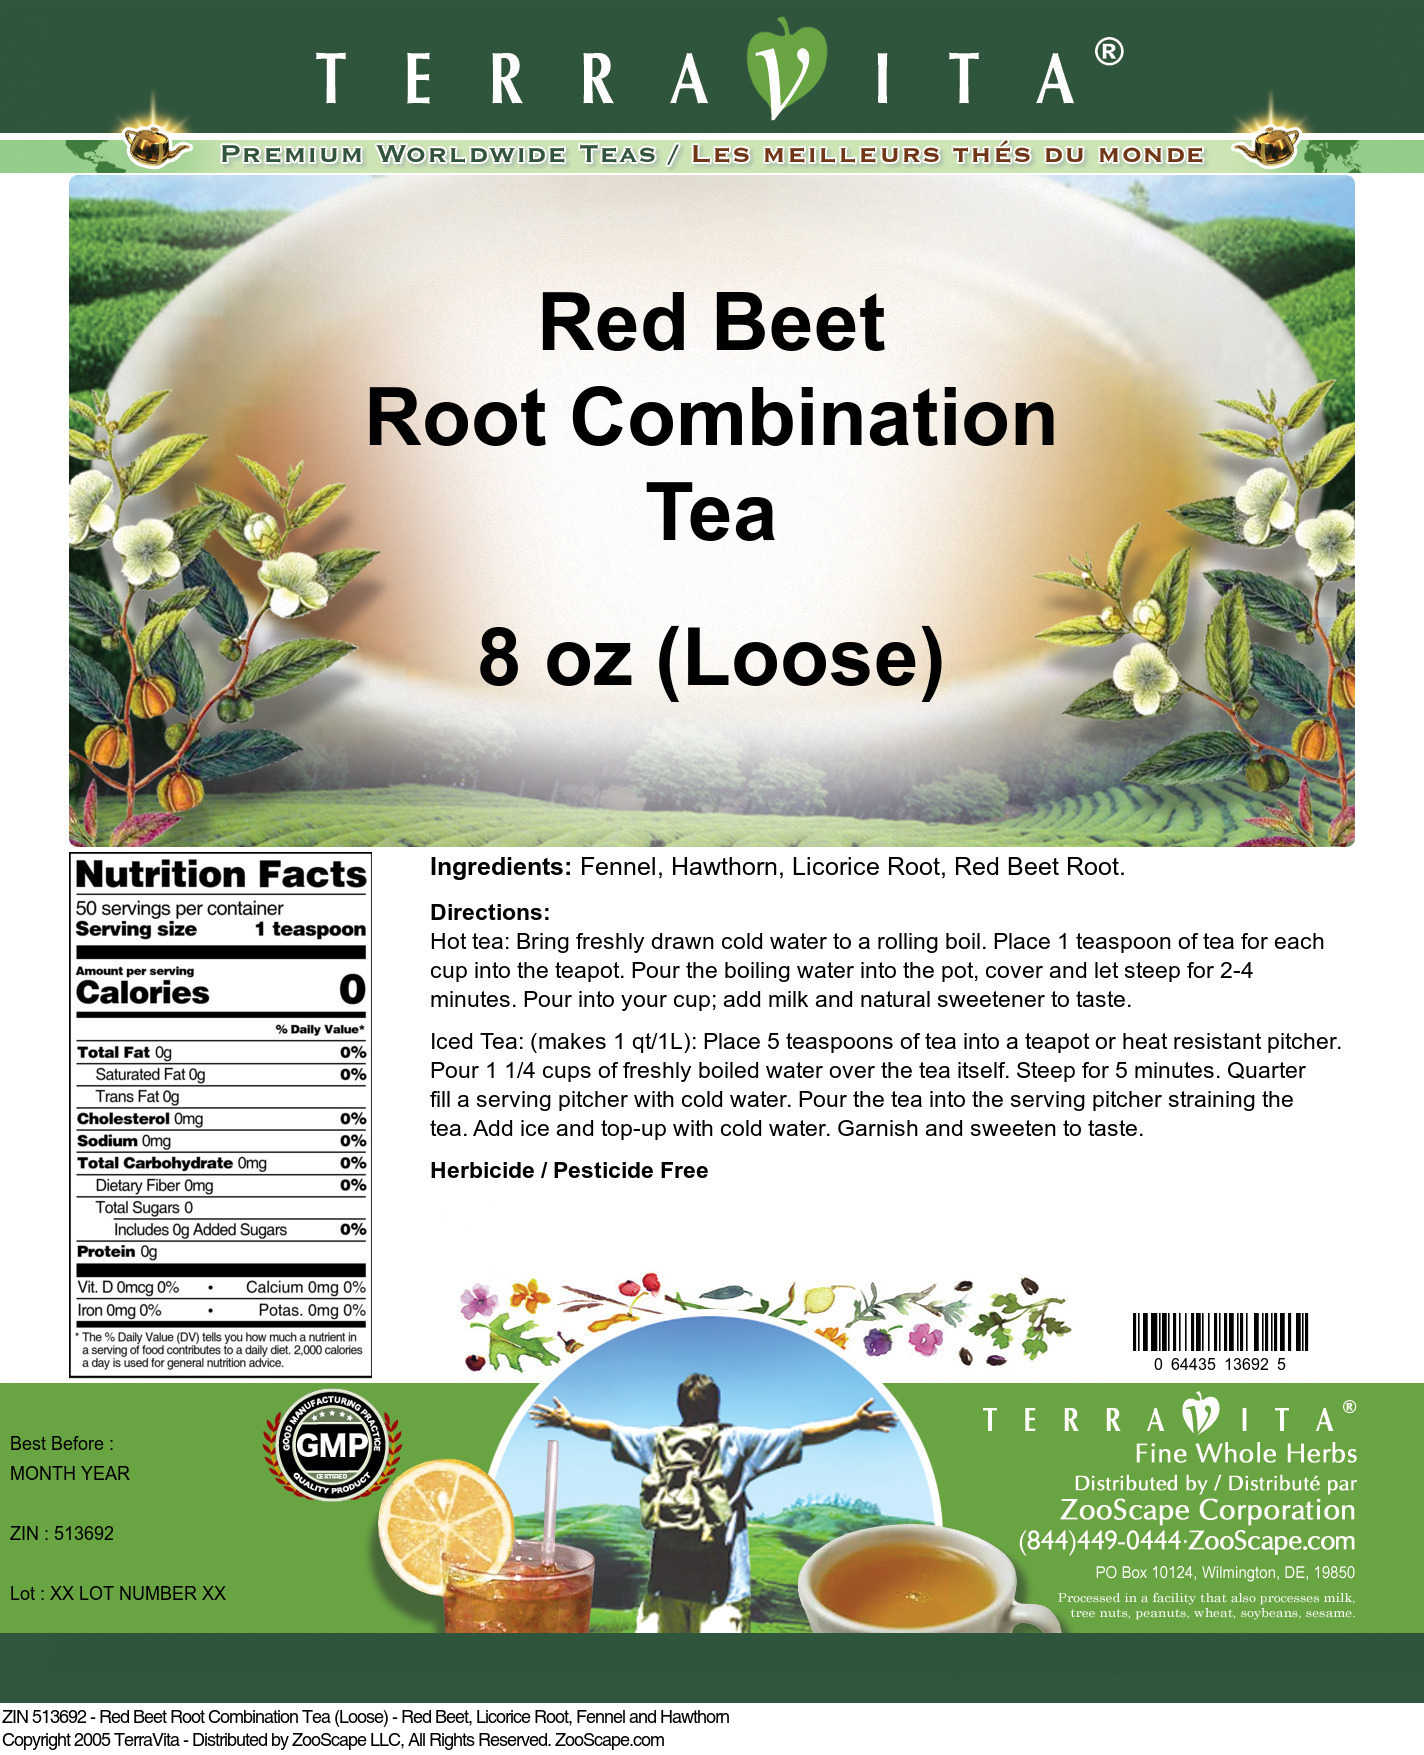 Red Beet Root Combination